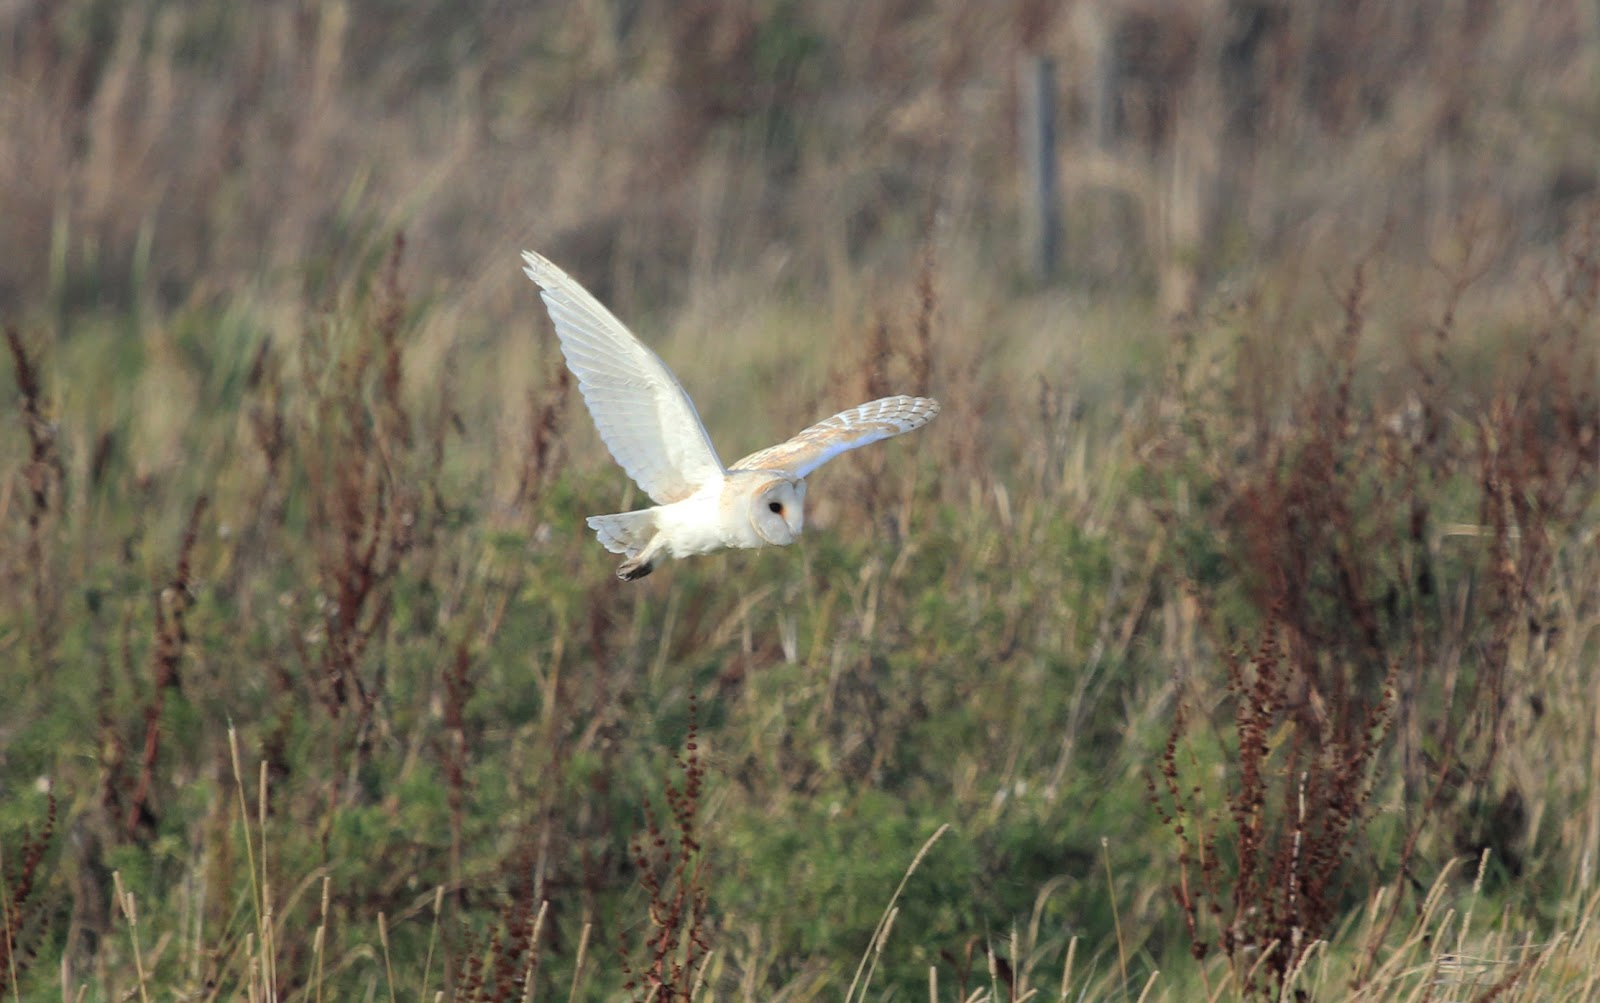 Barn Owl Tyto alba Also know as Common Barn Owl Species Code TYAL Description The Barn Owl is a mediumsized raptor a nocturnal bird of prey like other owls